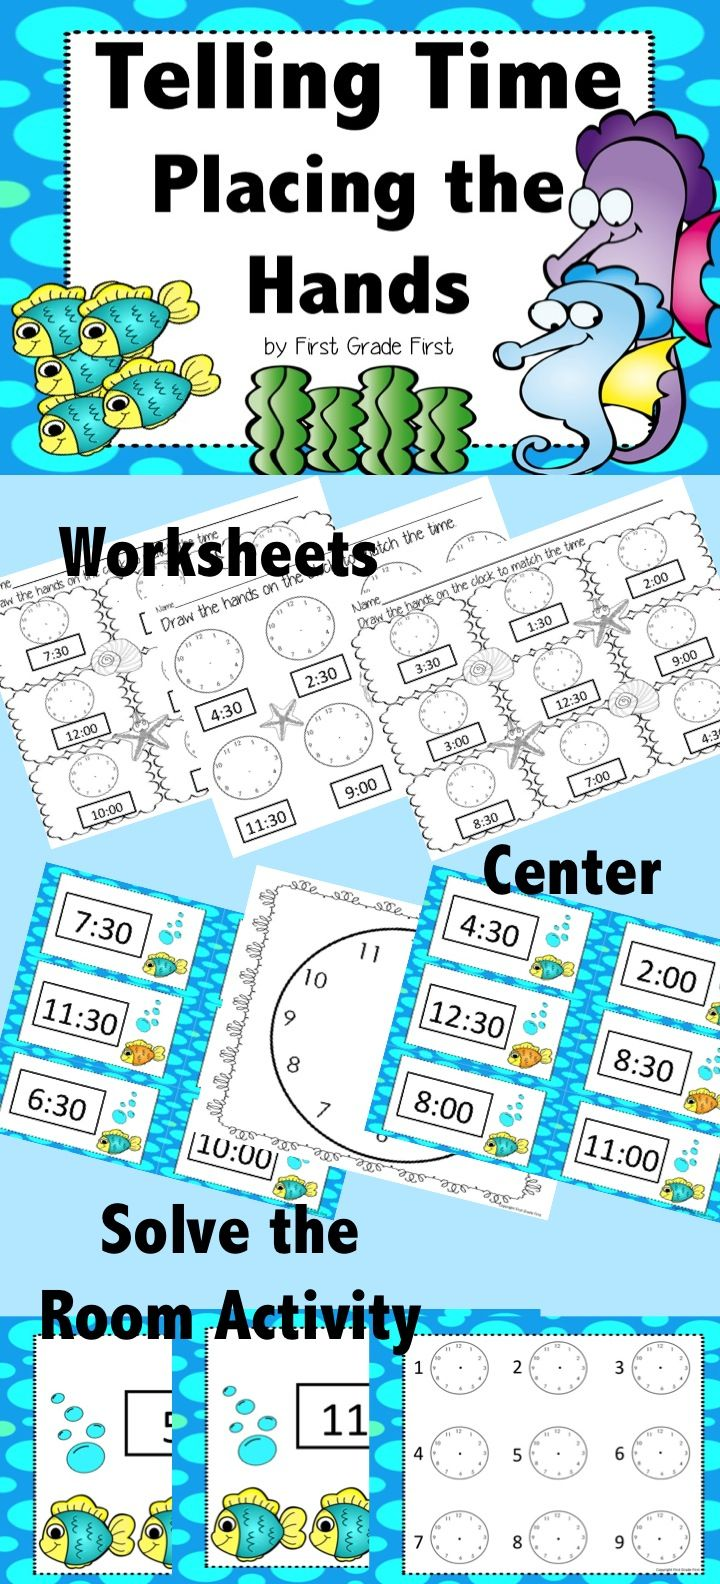 15 best matem images on Pinterest | Telling time activities, English ...